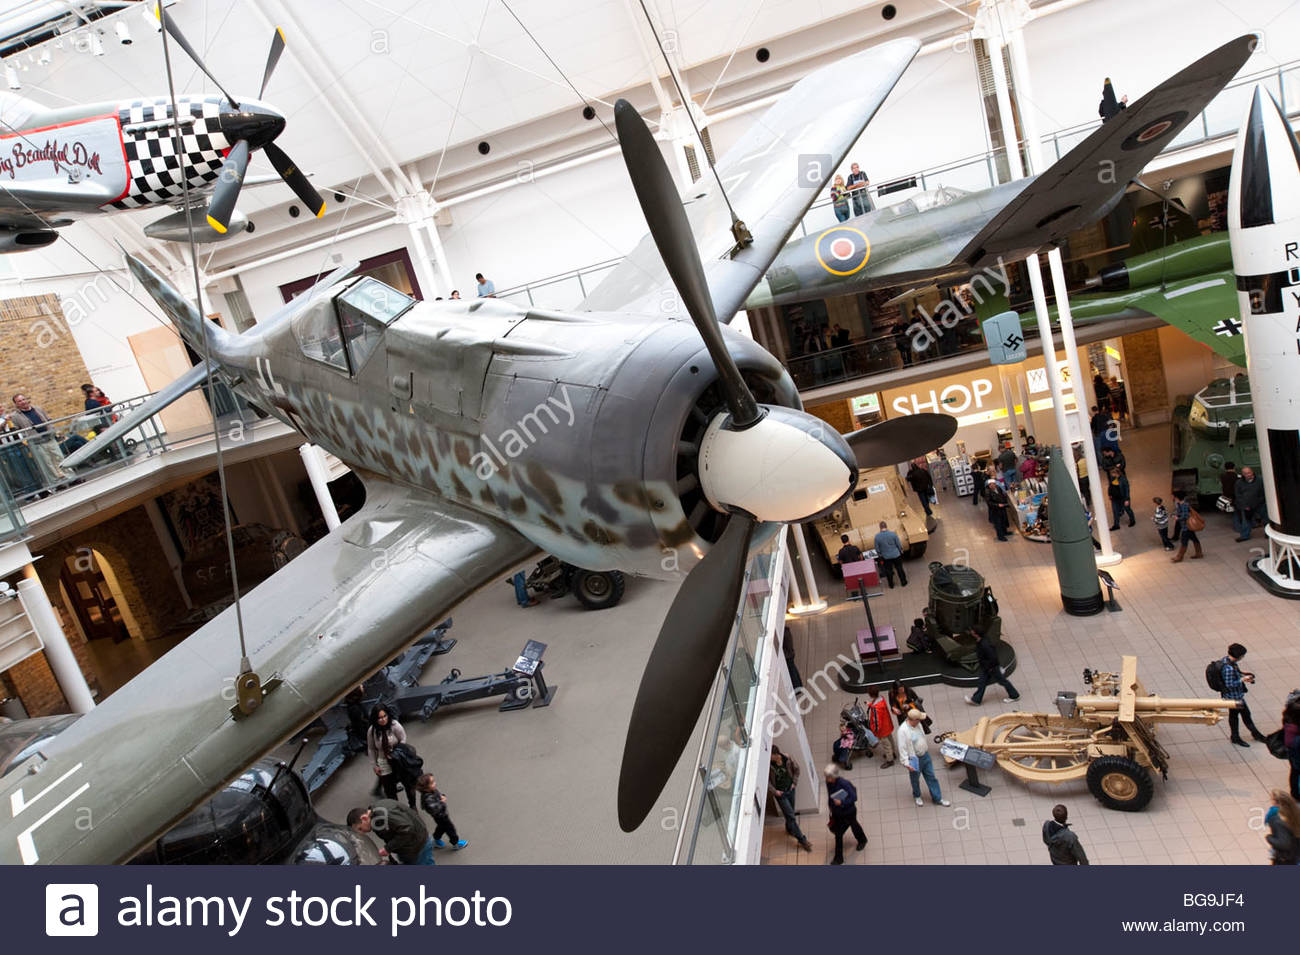 German Focke-Wulf Fw 190 World War II fighter aircraft in the Imperial War Museum, London, England, UK - Stock Image